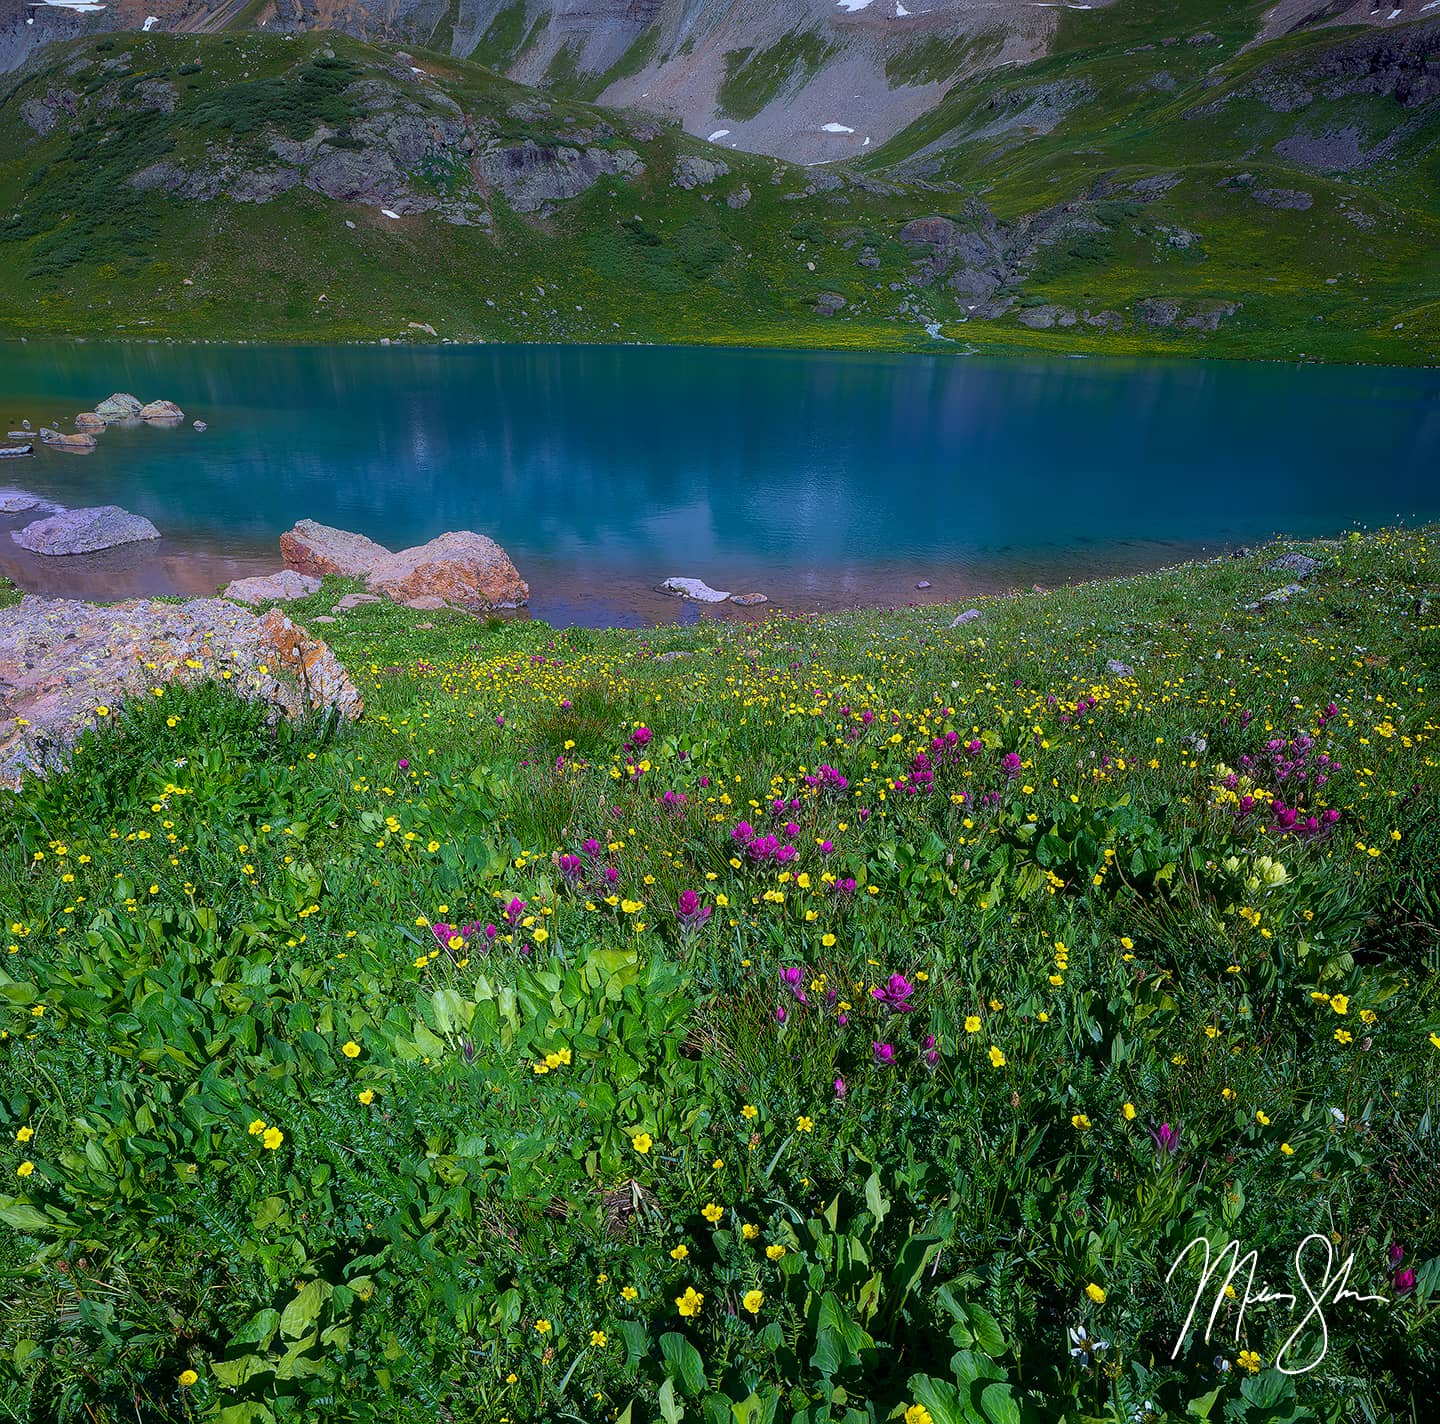 Ice Lake Wildflowers - Ice Lake, Silverton, Colorado